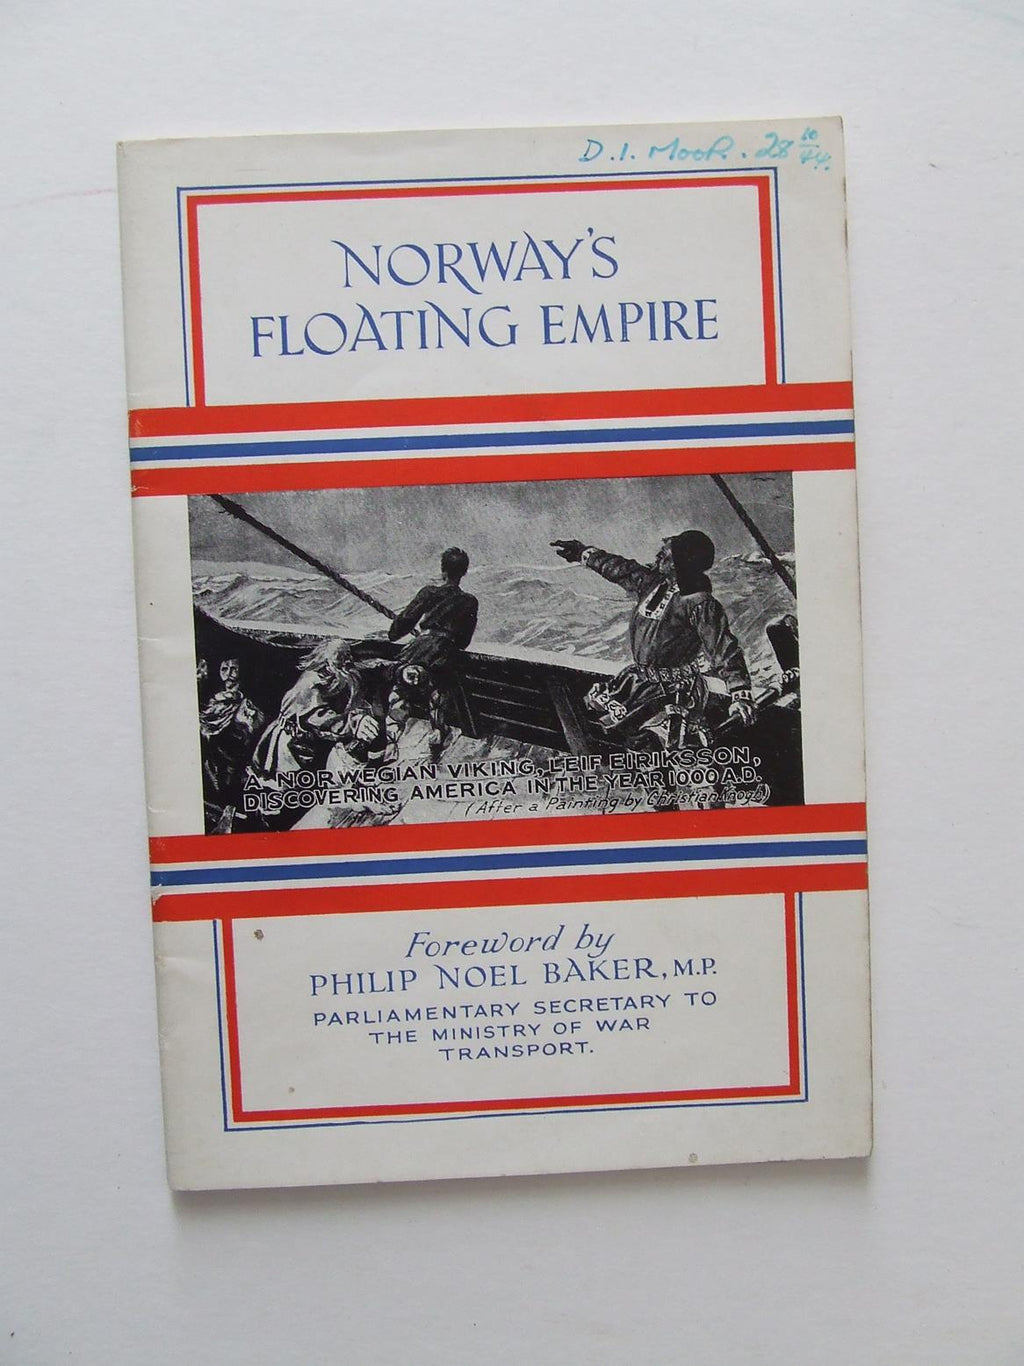 Norway's Floating Empire